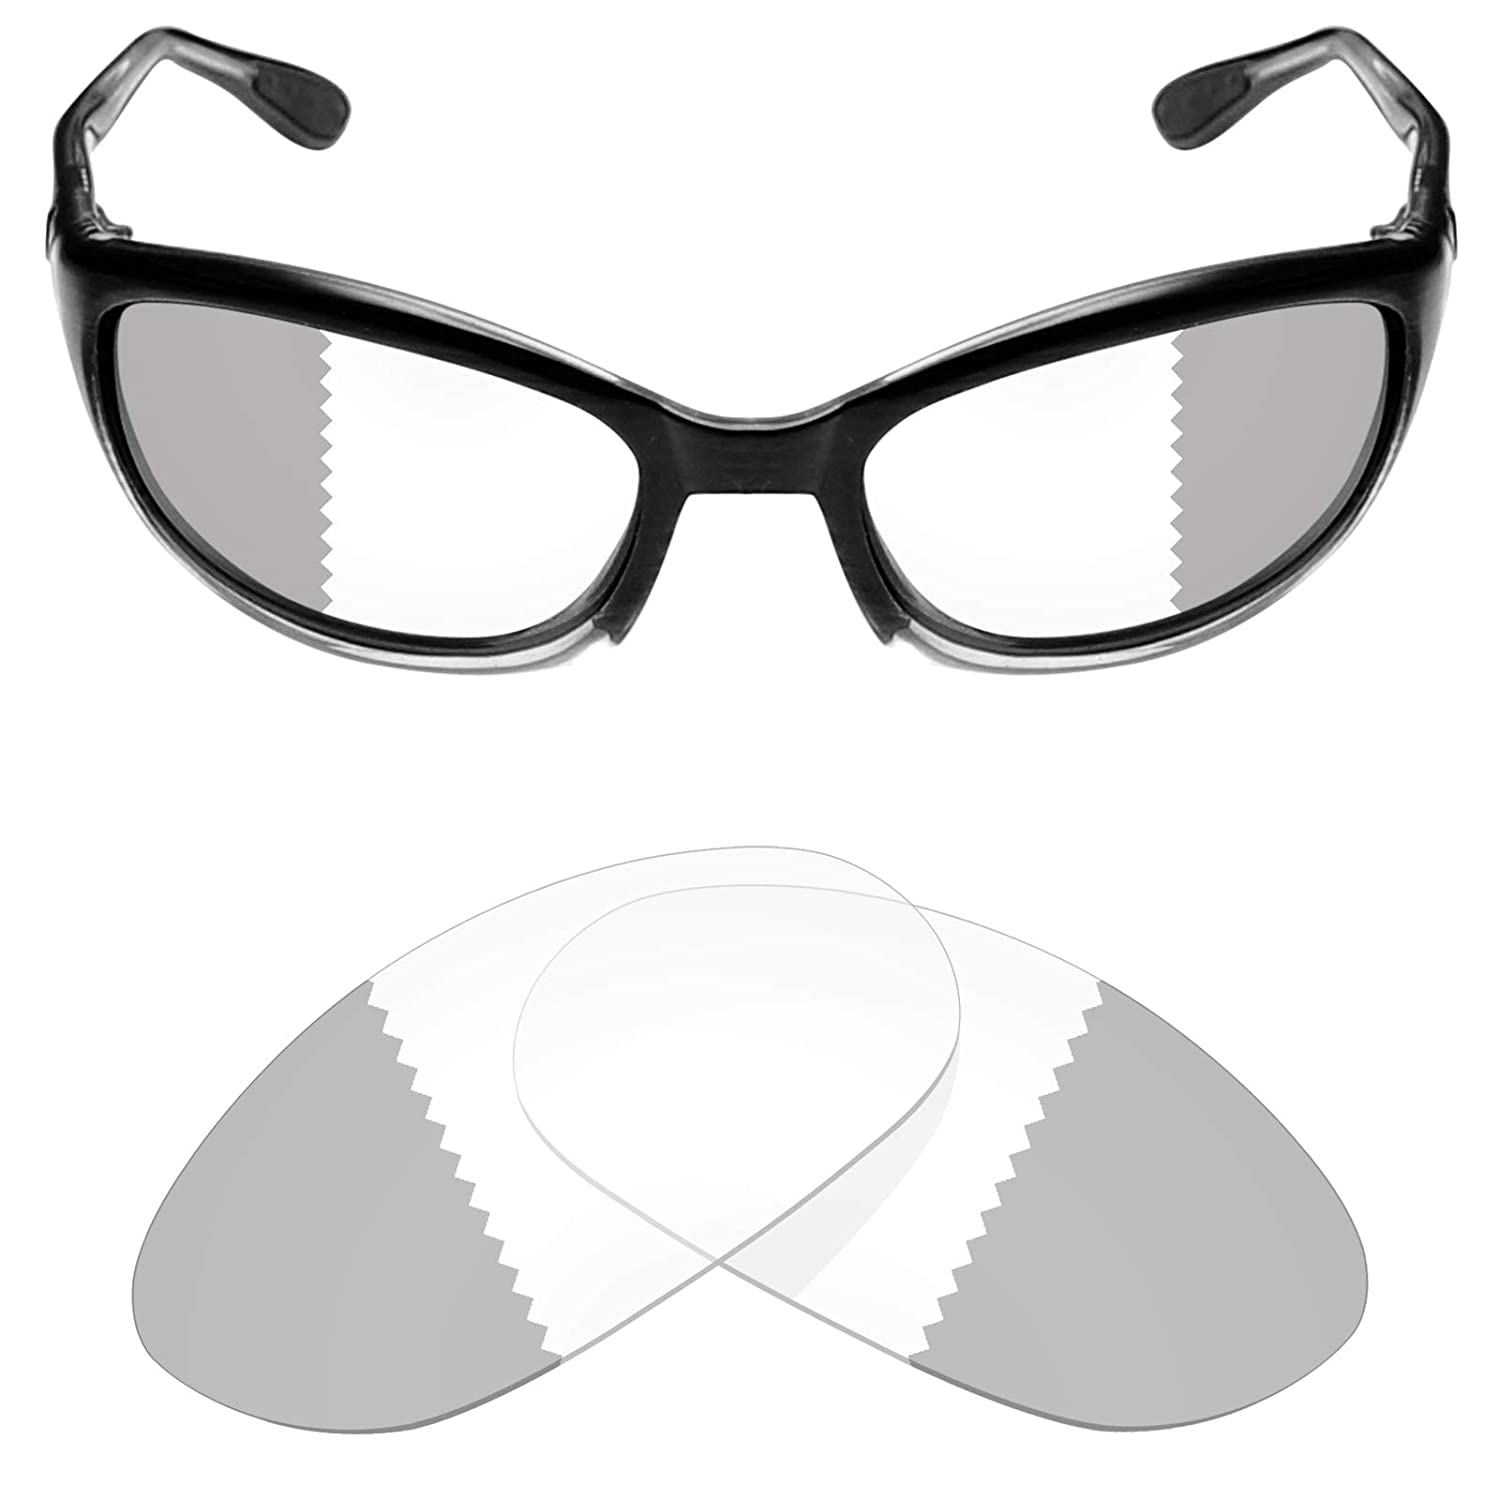 355f1d16cc9c Mryok UV400 Replacement Lenses for Del Mar Harpoon - Eclipse Grey  Photochromic at Amazon Men's Clothing store: